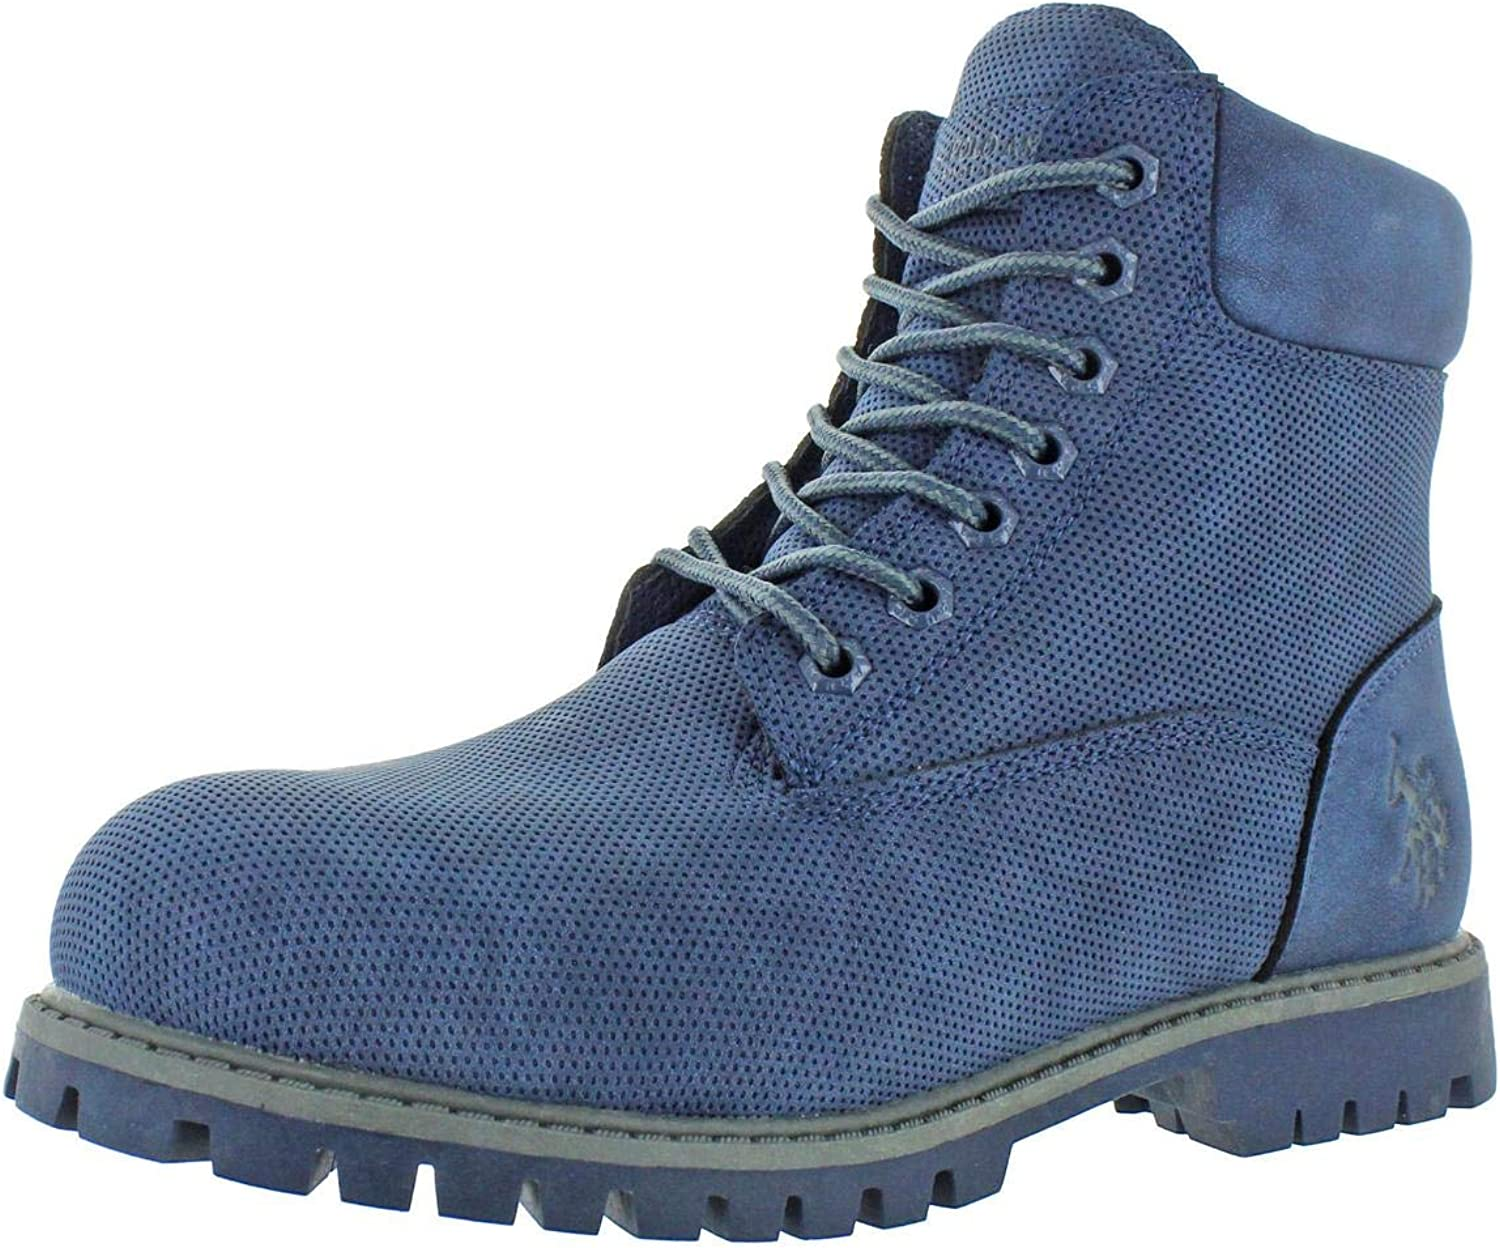 U.S. Polo Assn. Mens Owen High Padded Insole Round Toe Hiking Boots